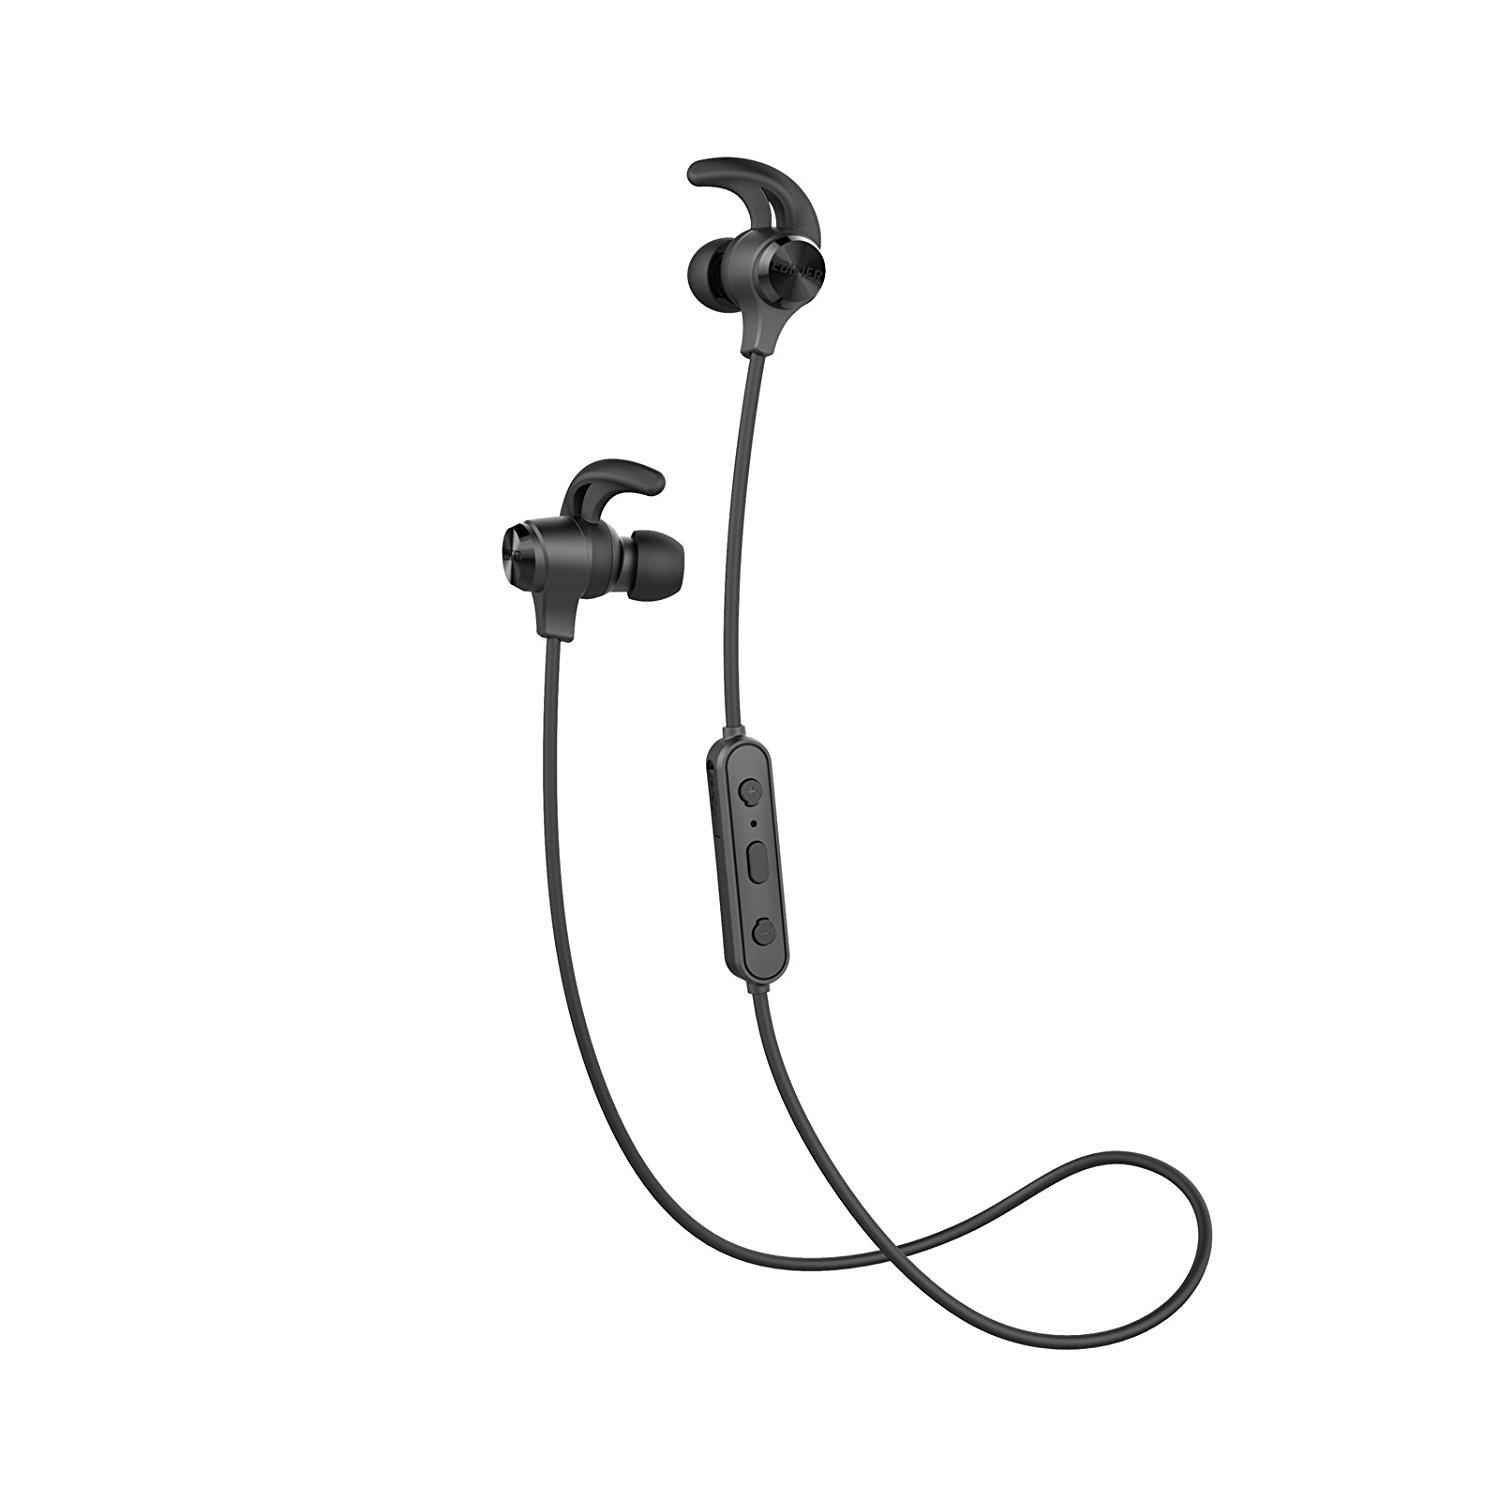 Edifier H180p Stereo Earbud 35mm Earphone With Microphone Andremote Earset H185p Biru Tai Nghe Th Thao Bluetooth Nht W280bt